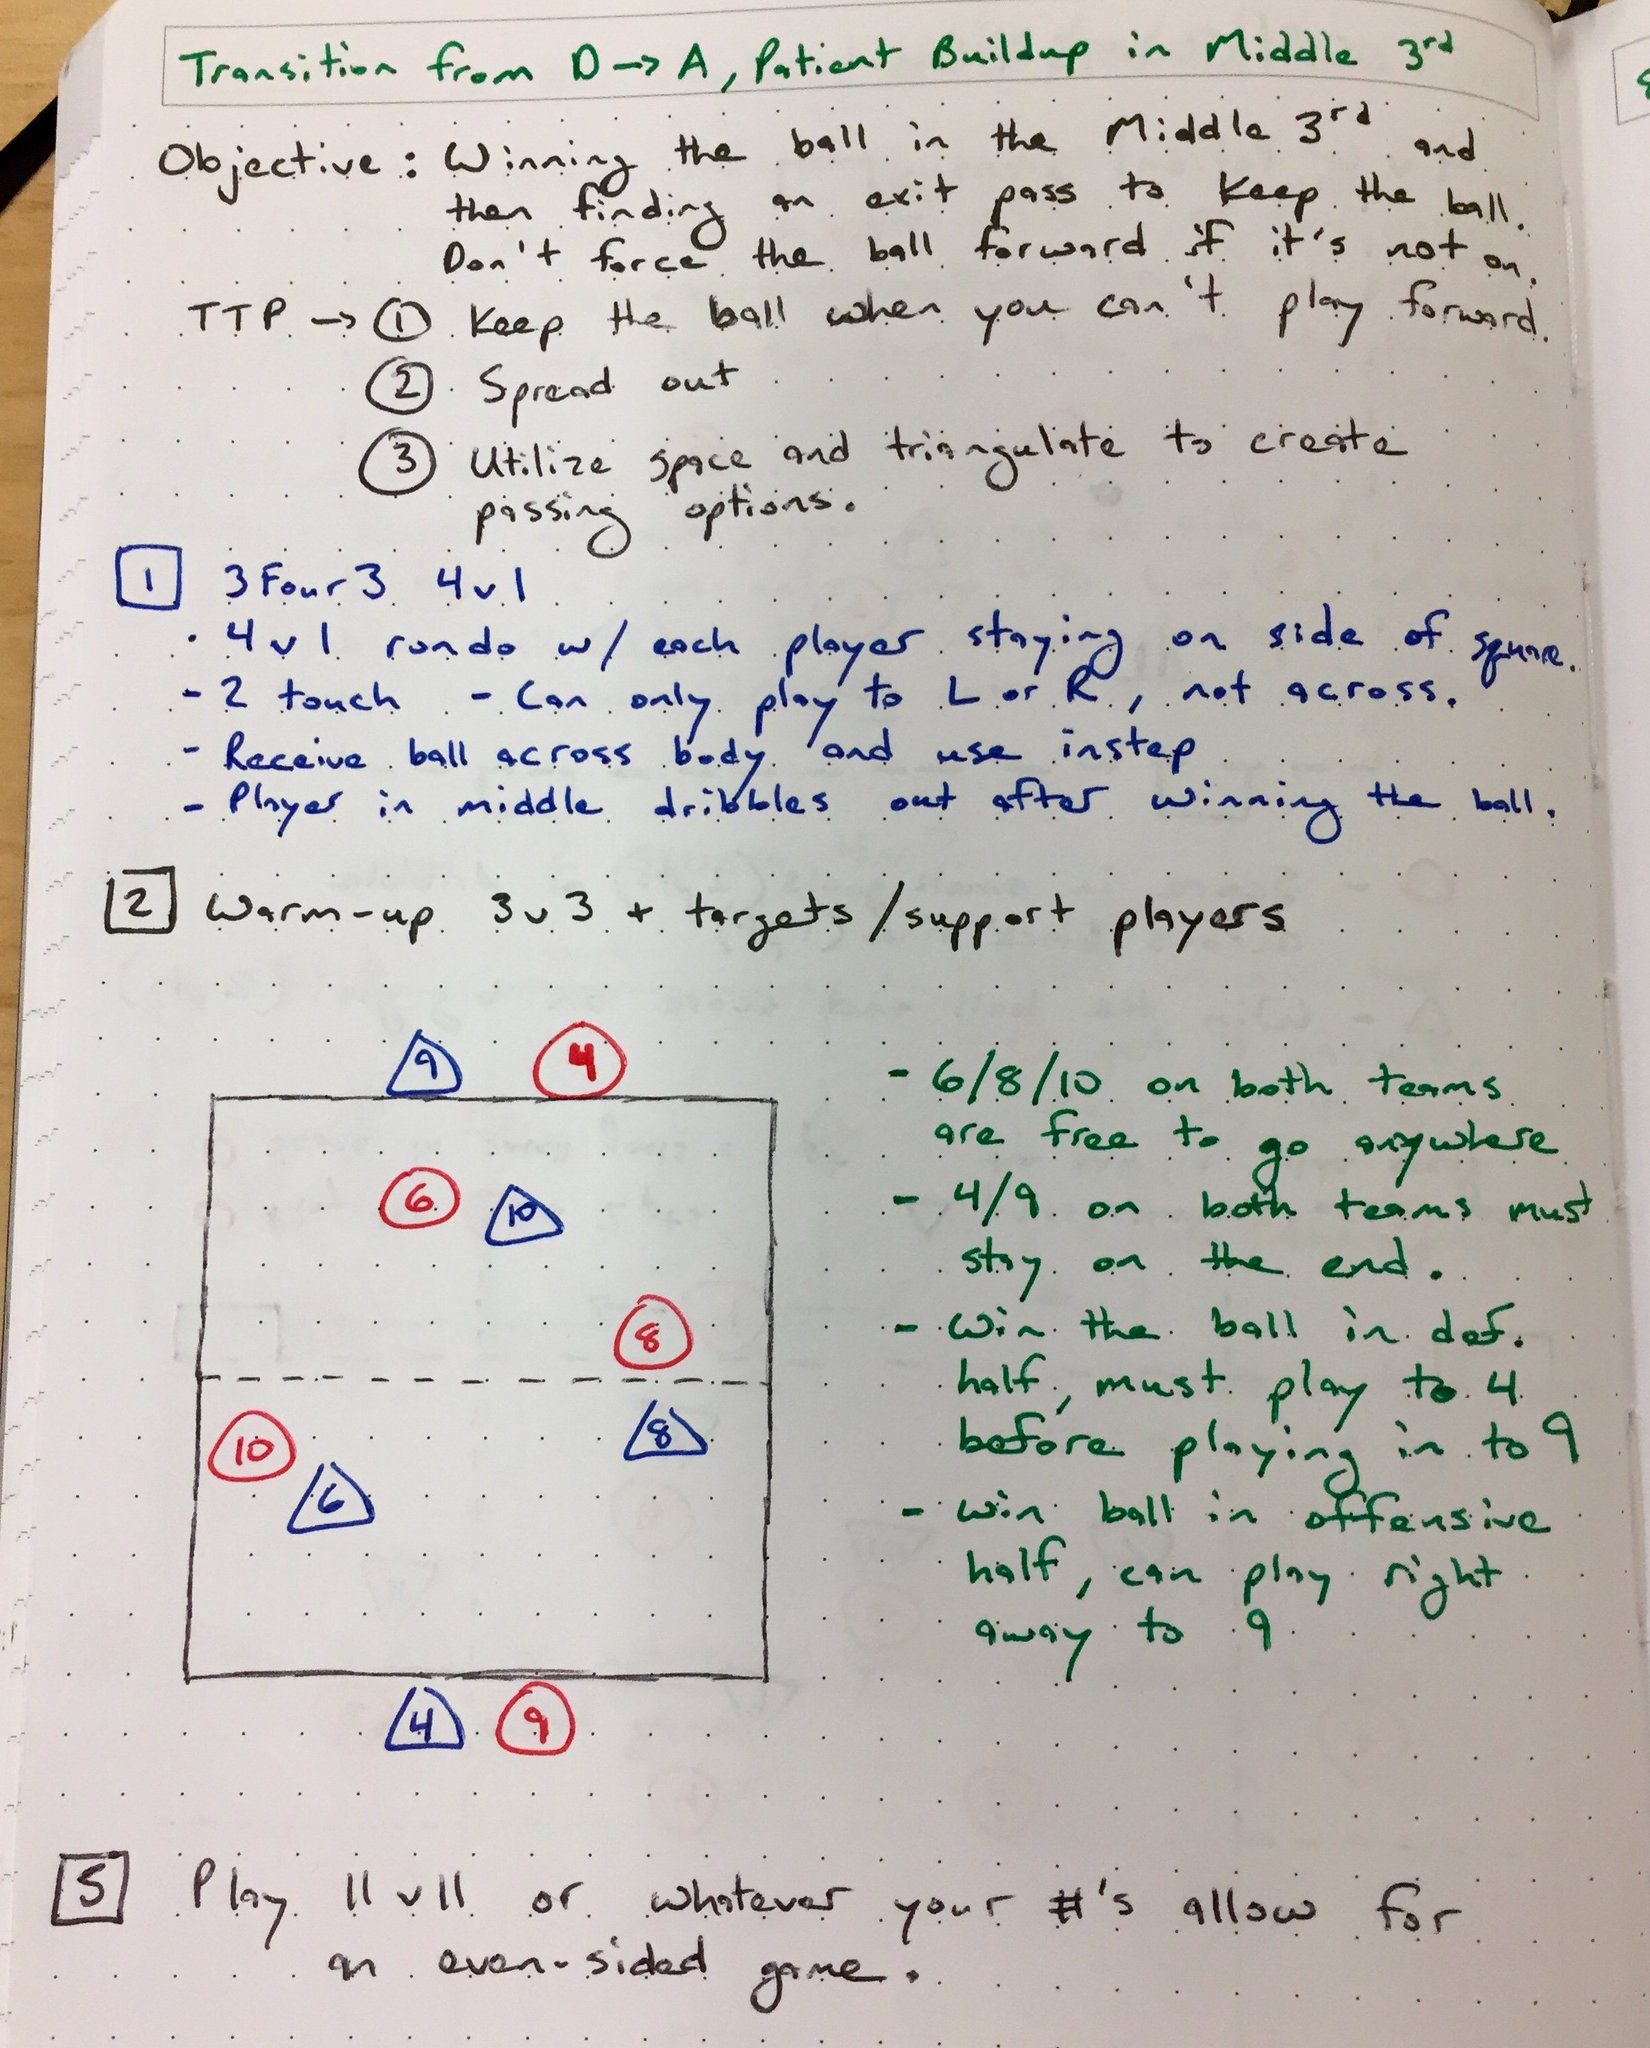 Working on patient buildup in middle 3rd tonight. Focusing on winning the ball in congested areas and looking to relieve pressure through an exit pass. Upon winning the ball, we don't have to force a pass forward if it's not on. Feedback is welcome! Feel free to share/use/adapt! https://t.co/LbWt6PnIIv